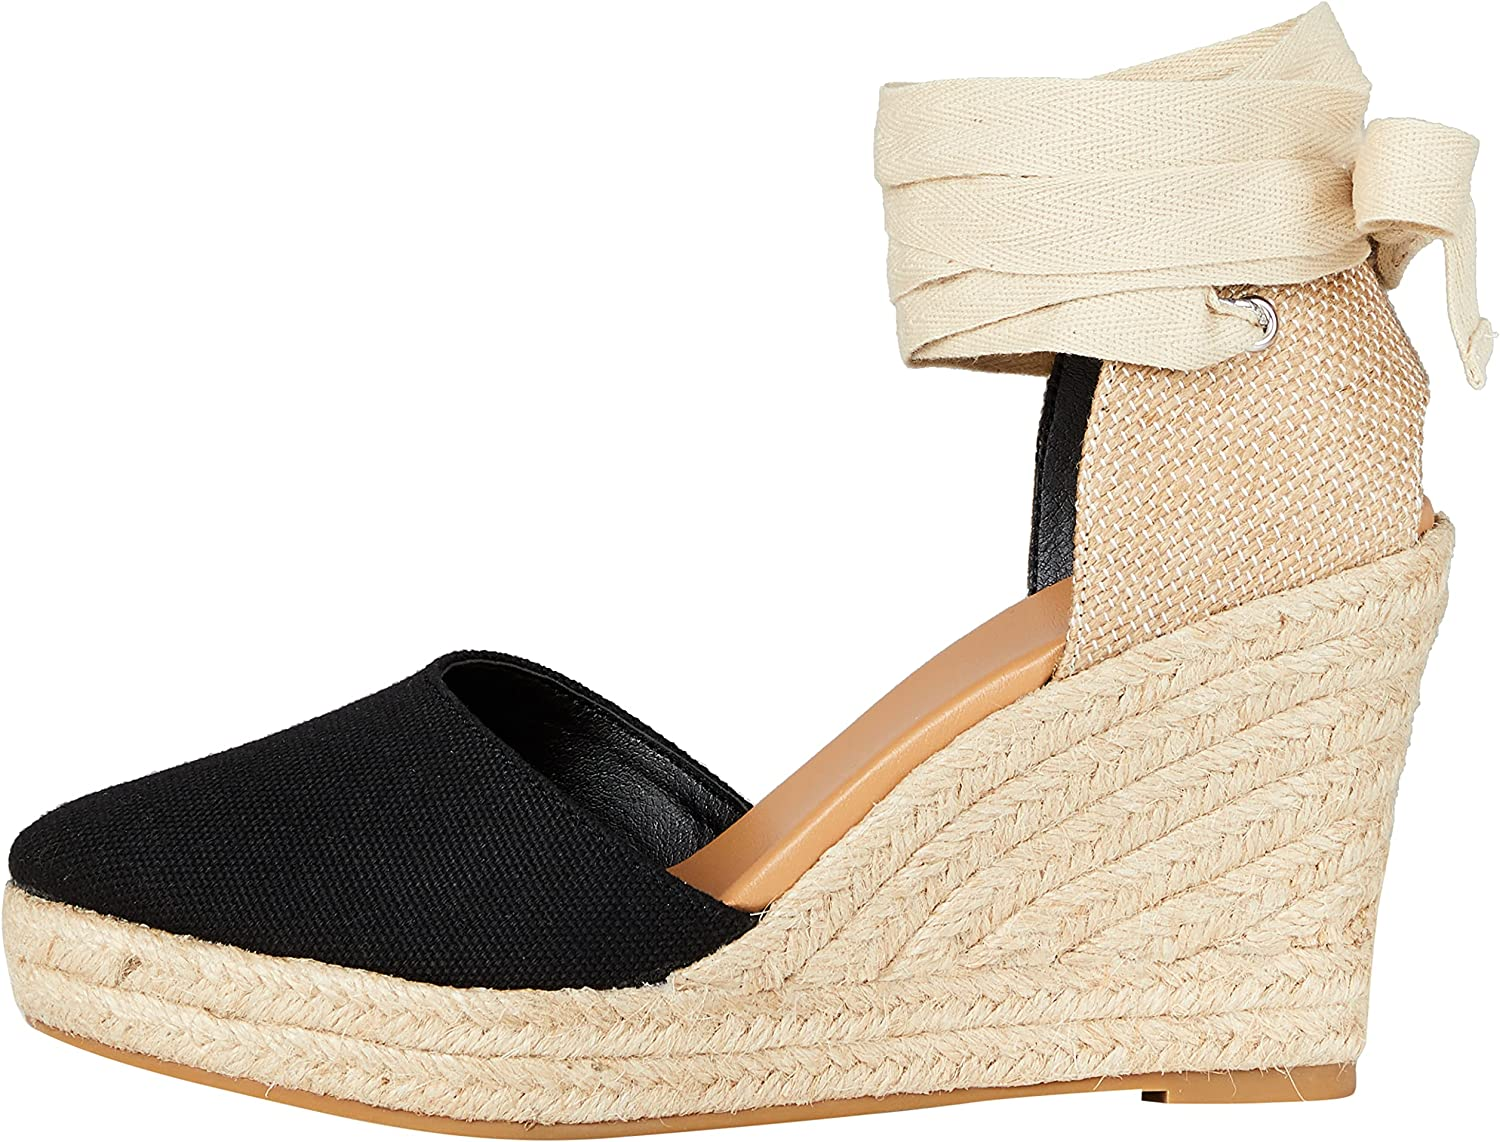 find. New Free Shipping Women's Wedge Close Toe Espadrille Sandal High order Canvas